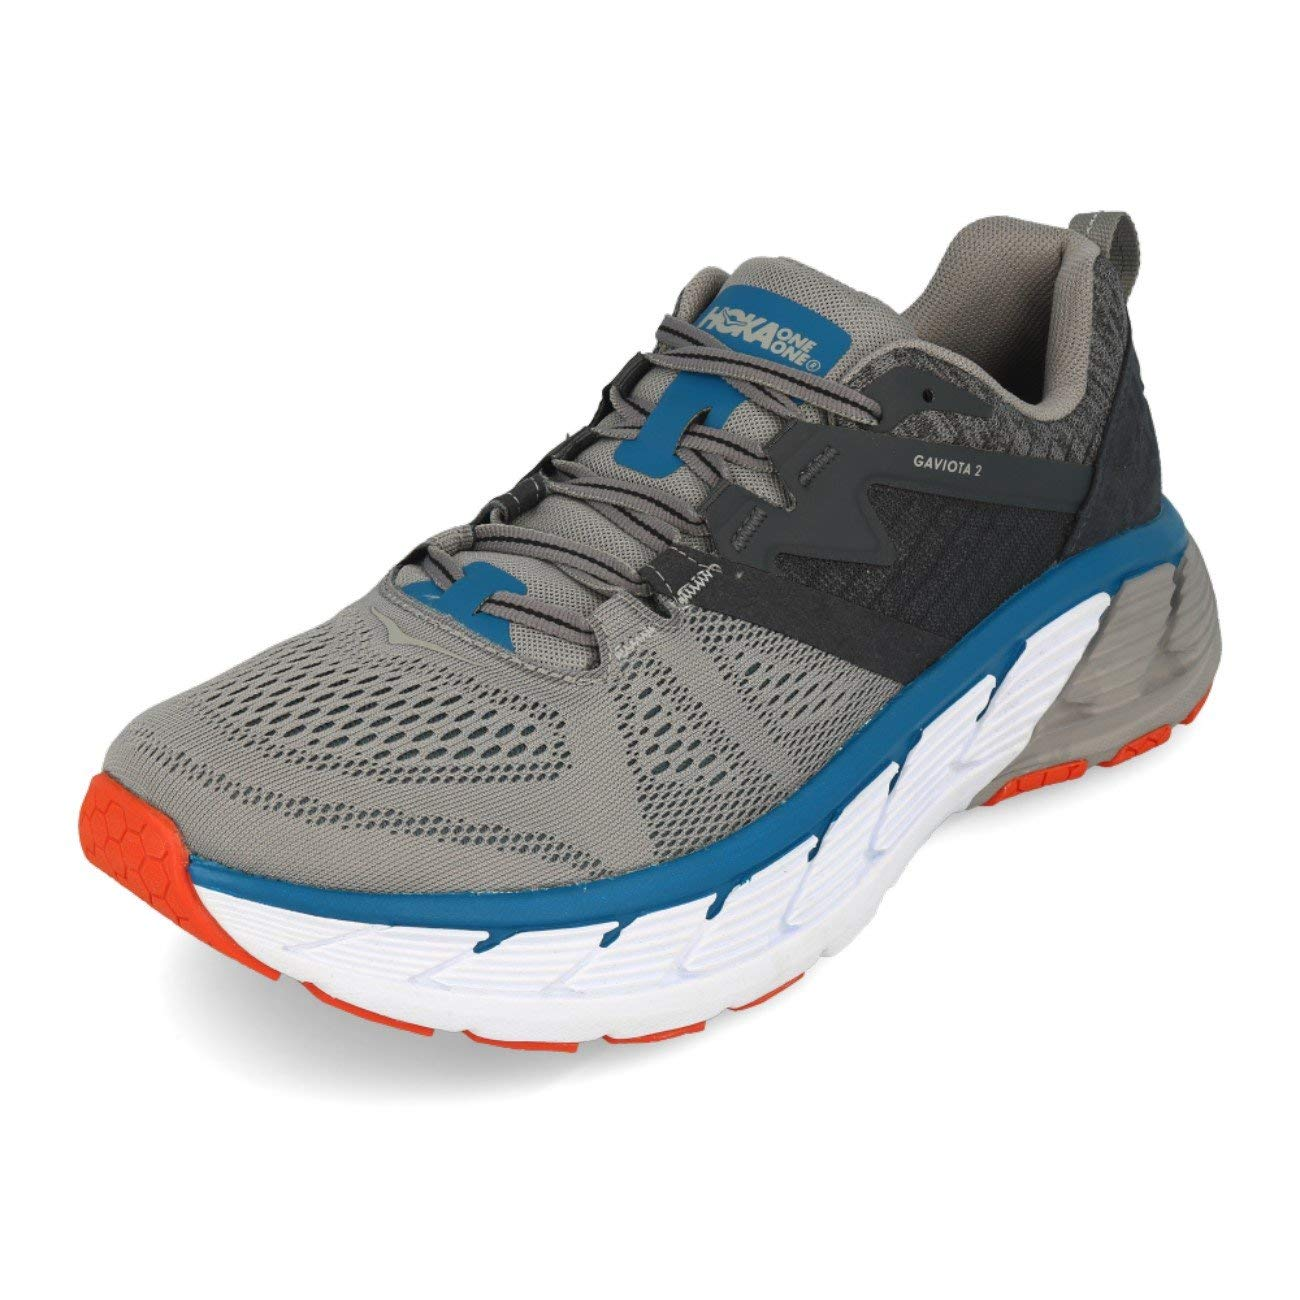 official photos 20b76 7009b Amazon.com | HOKA ONE ONE Men's Gaviota 2 | Running